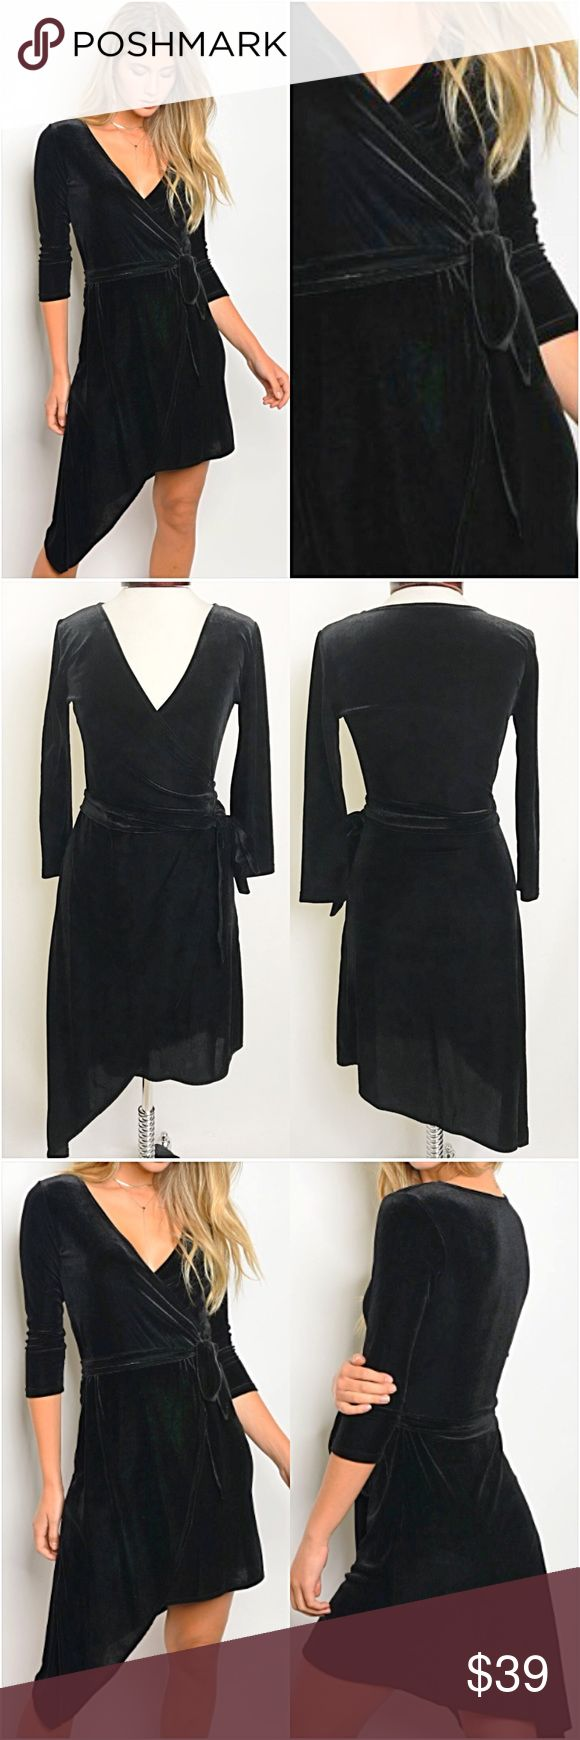 """Gorgeous Black VELVET LBD Wraparound Dress SML Velvet wraparound LBD perfect for your holiday parties. 3/4 sleeves - fitted but stretchy - v-neck - asymmetrical hemline - partial wrap around tie at waist. WOW!  96% polyester- 4% spandex Model is a XS wearing a small for reference - If between sizes, go up a size  Small (fits XS-Small) Bust 32-34 Length 36"""" Med (Fits S-M) Bust 34-36 Length 36.5"""" Large ( Fits M-L) Bust 36-38 Length 37"""" Dresses"""